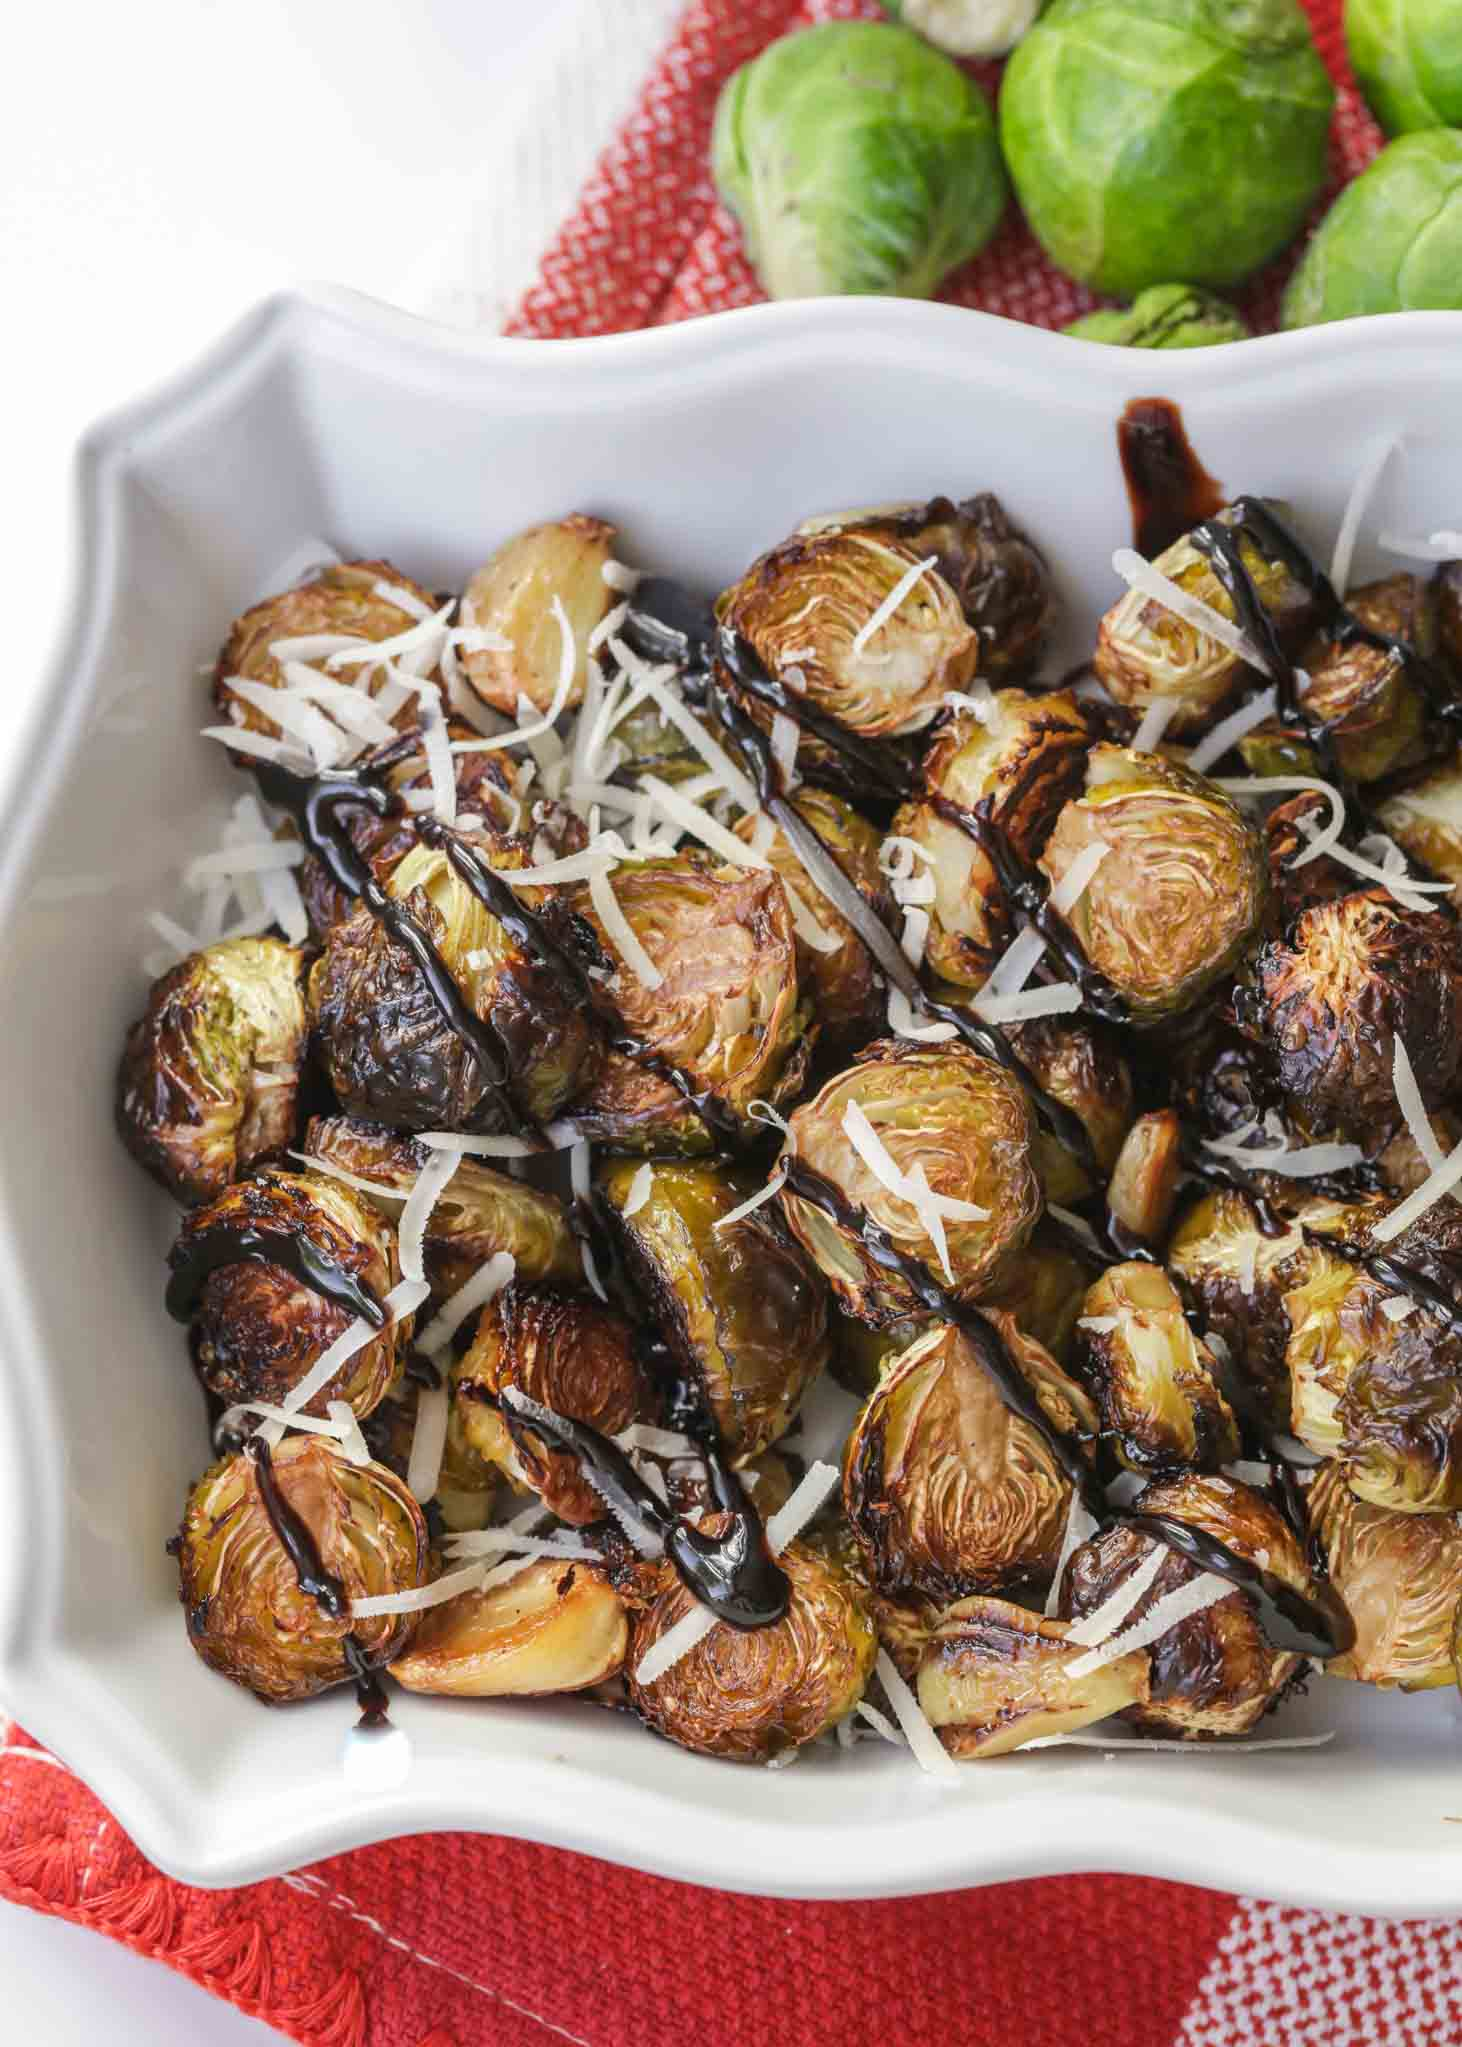 Roasted Brussel Sprouts with Balsamic in dish